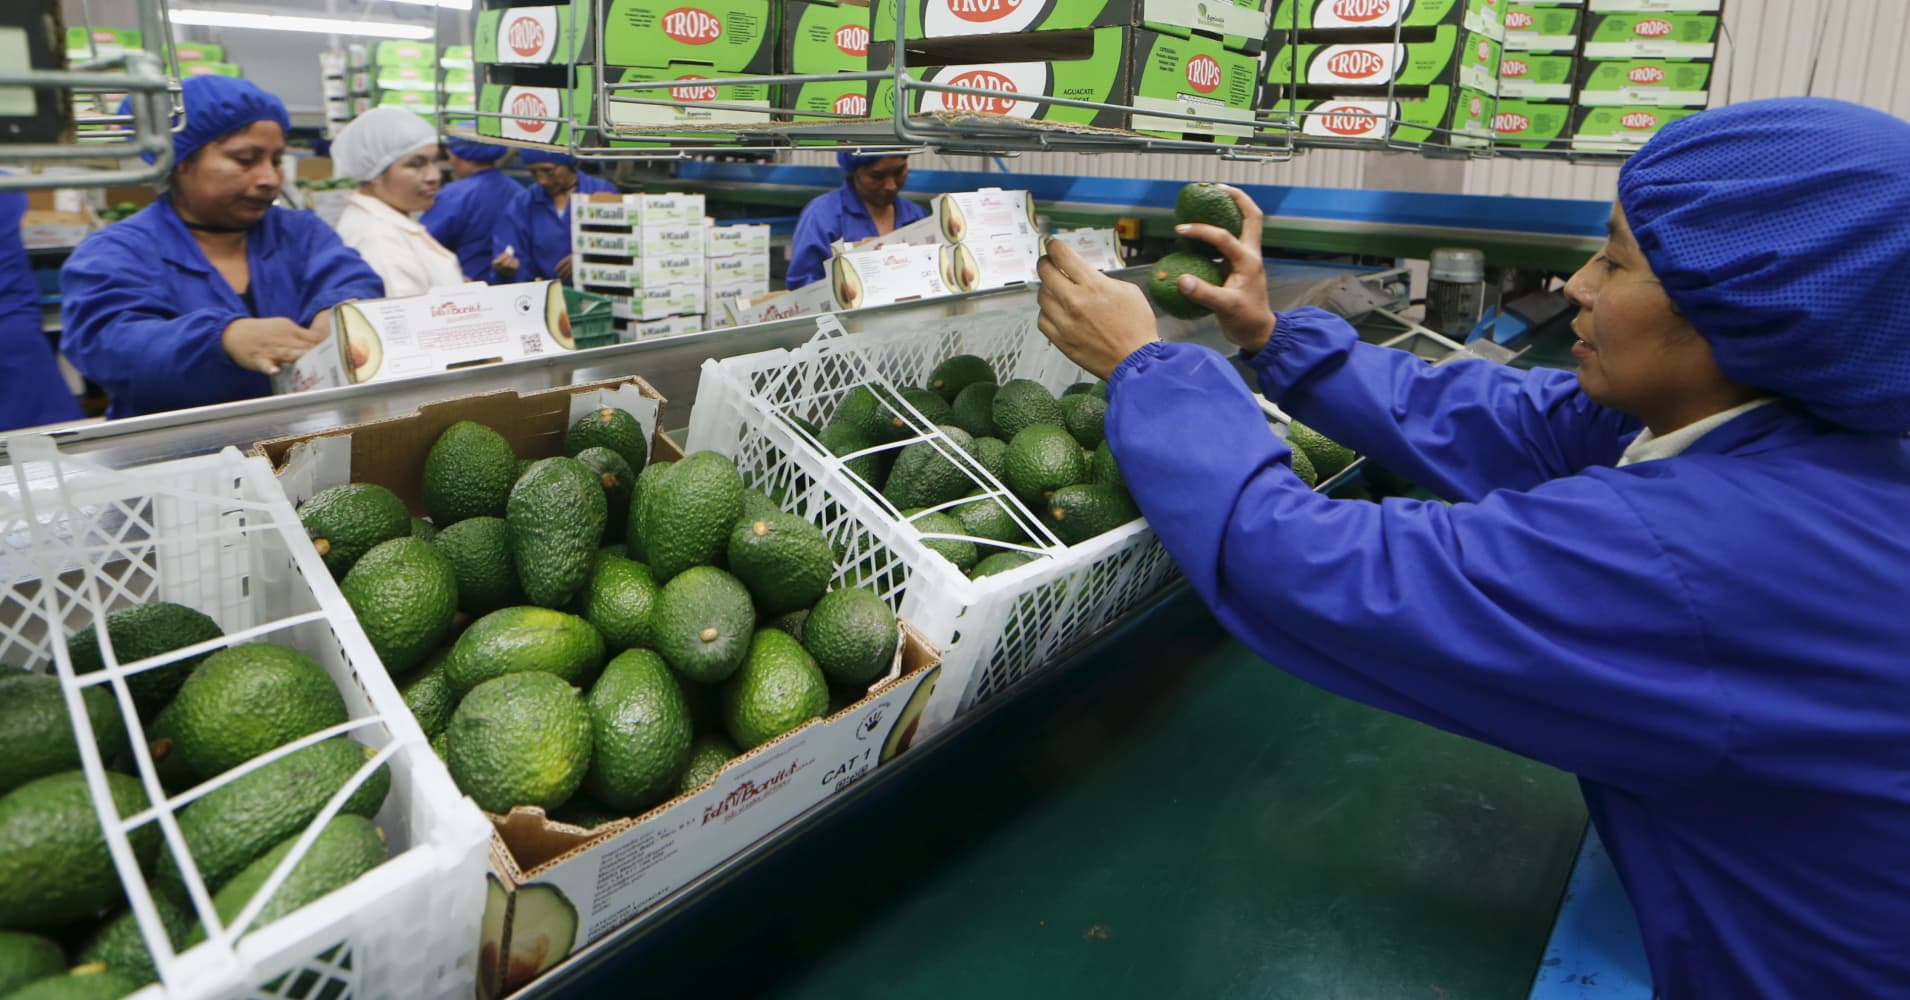 Forget passive investing, put your money into the likes of avocados, says asset manager